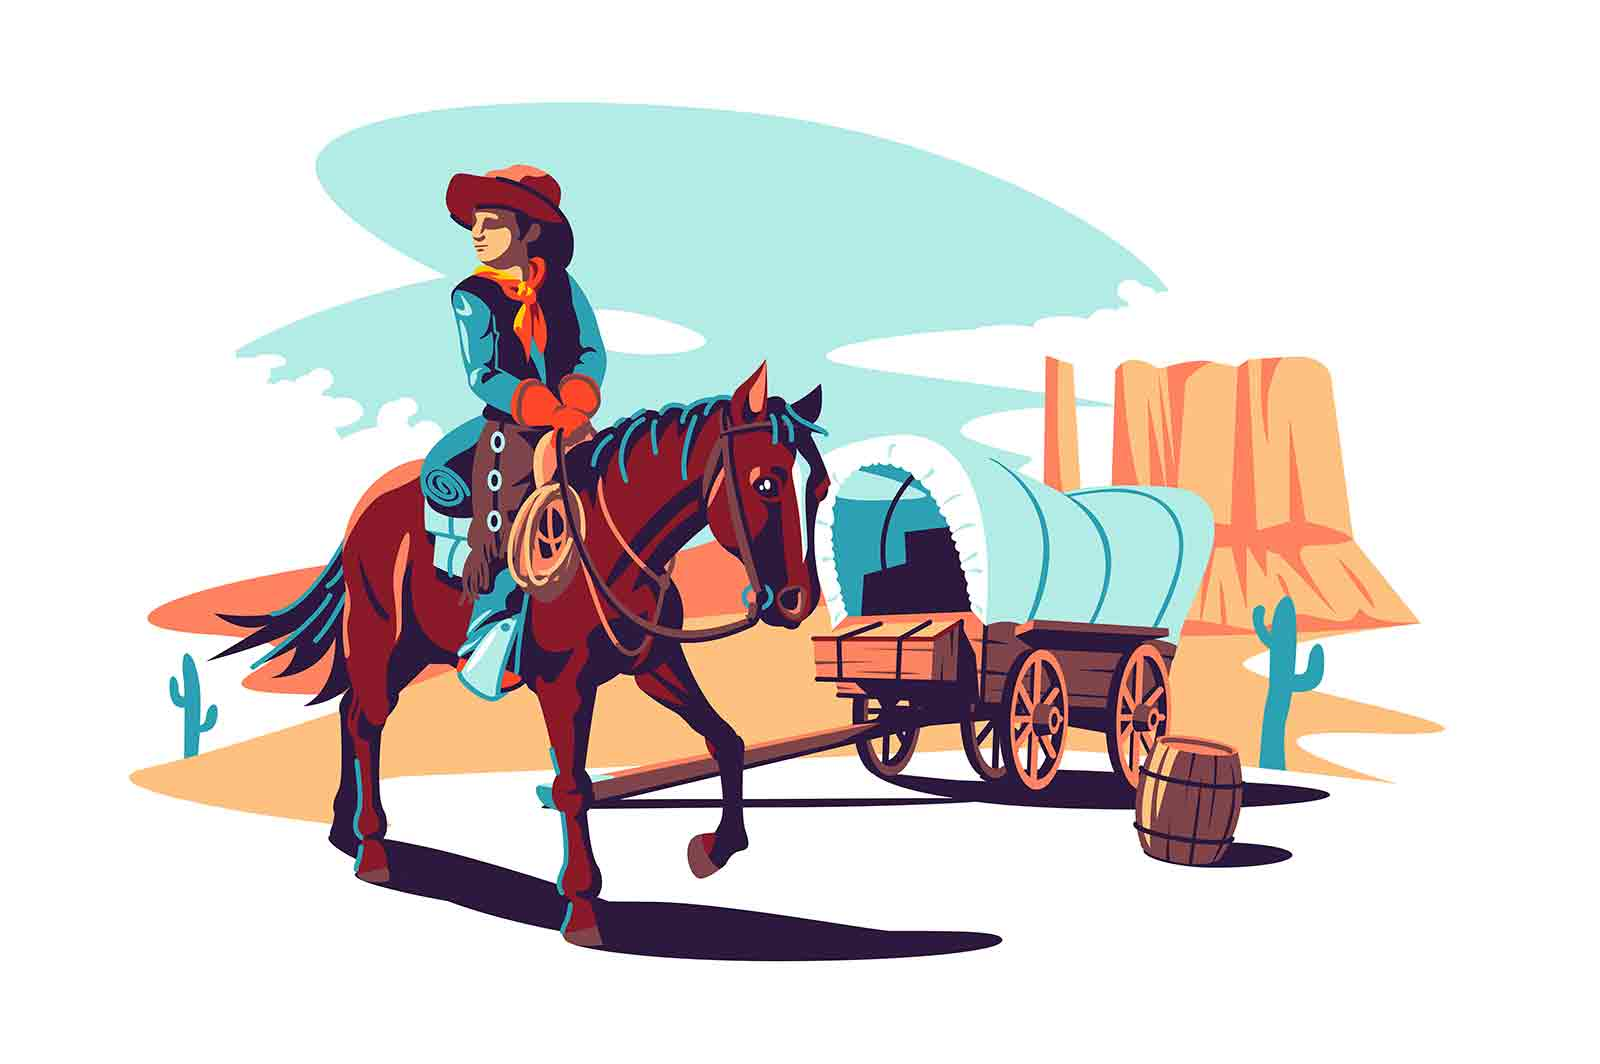 Landscape with wild american prairies vector illustration. Man on horse in hat flat style. Wild west, frontier, border protection concept